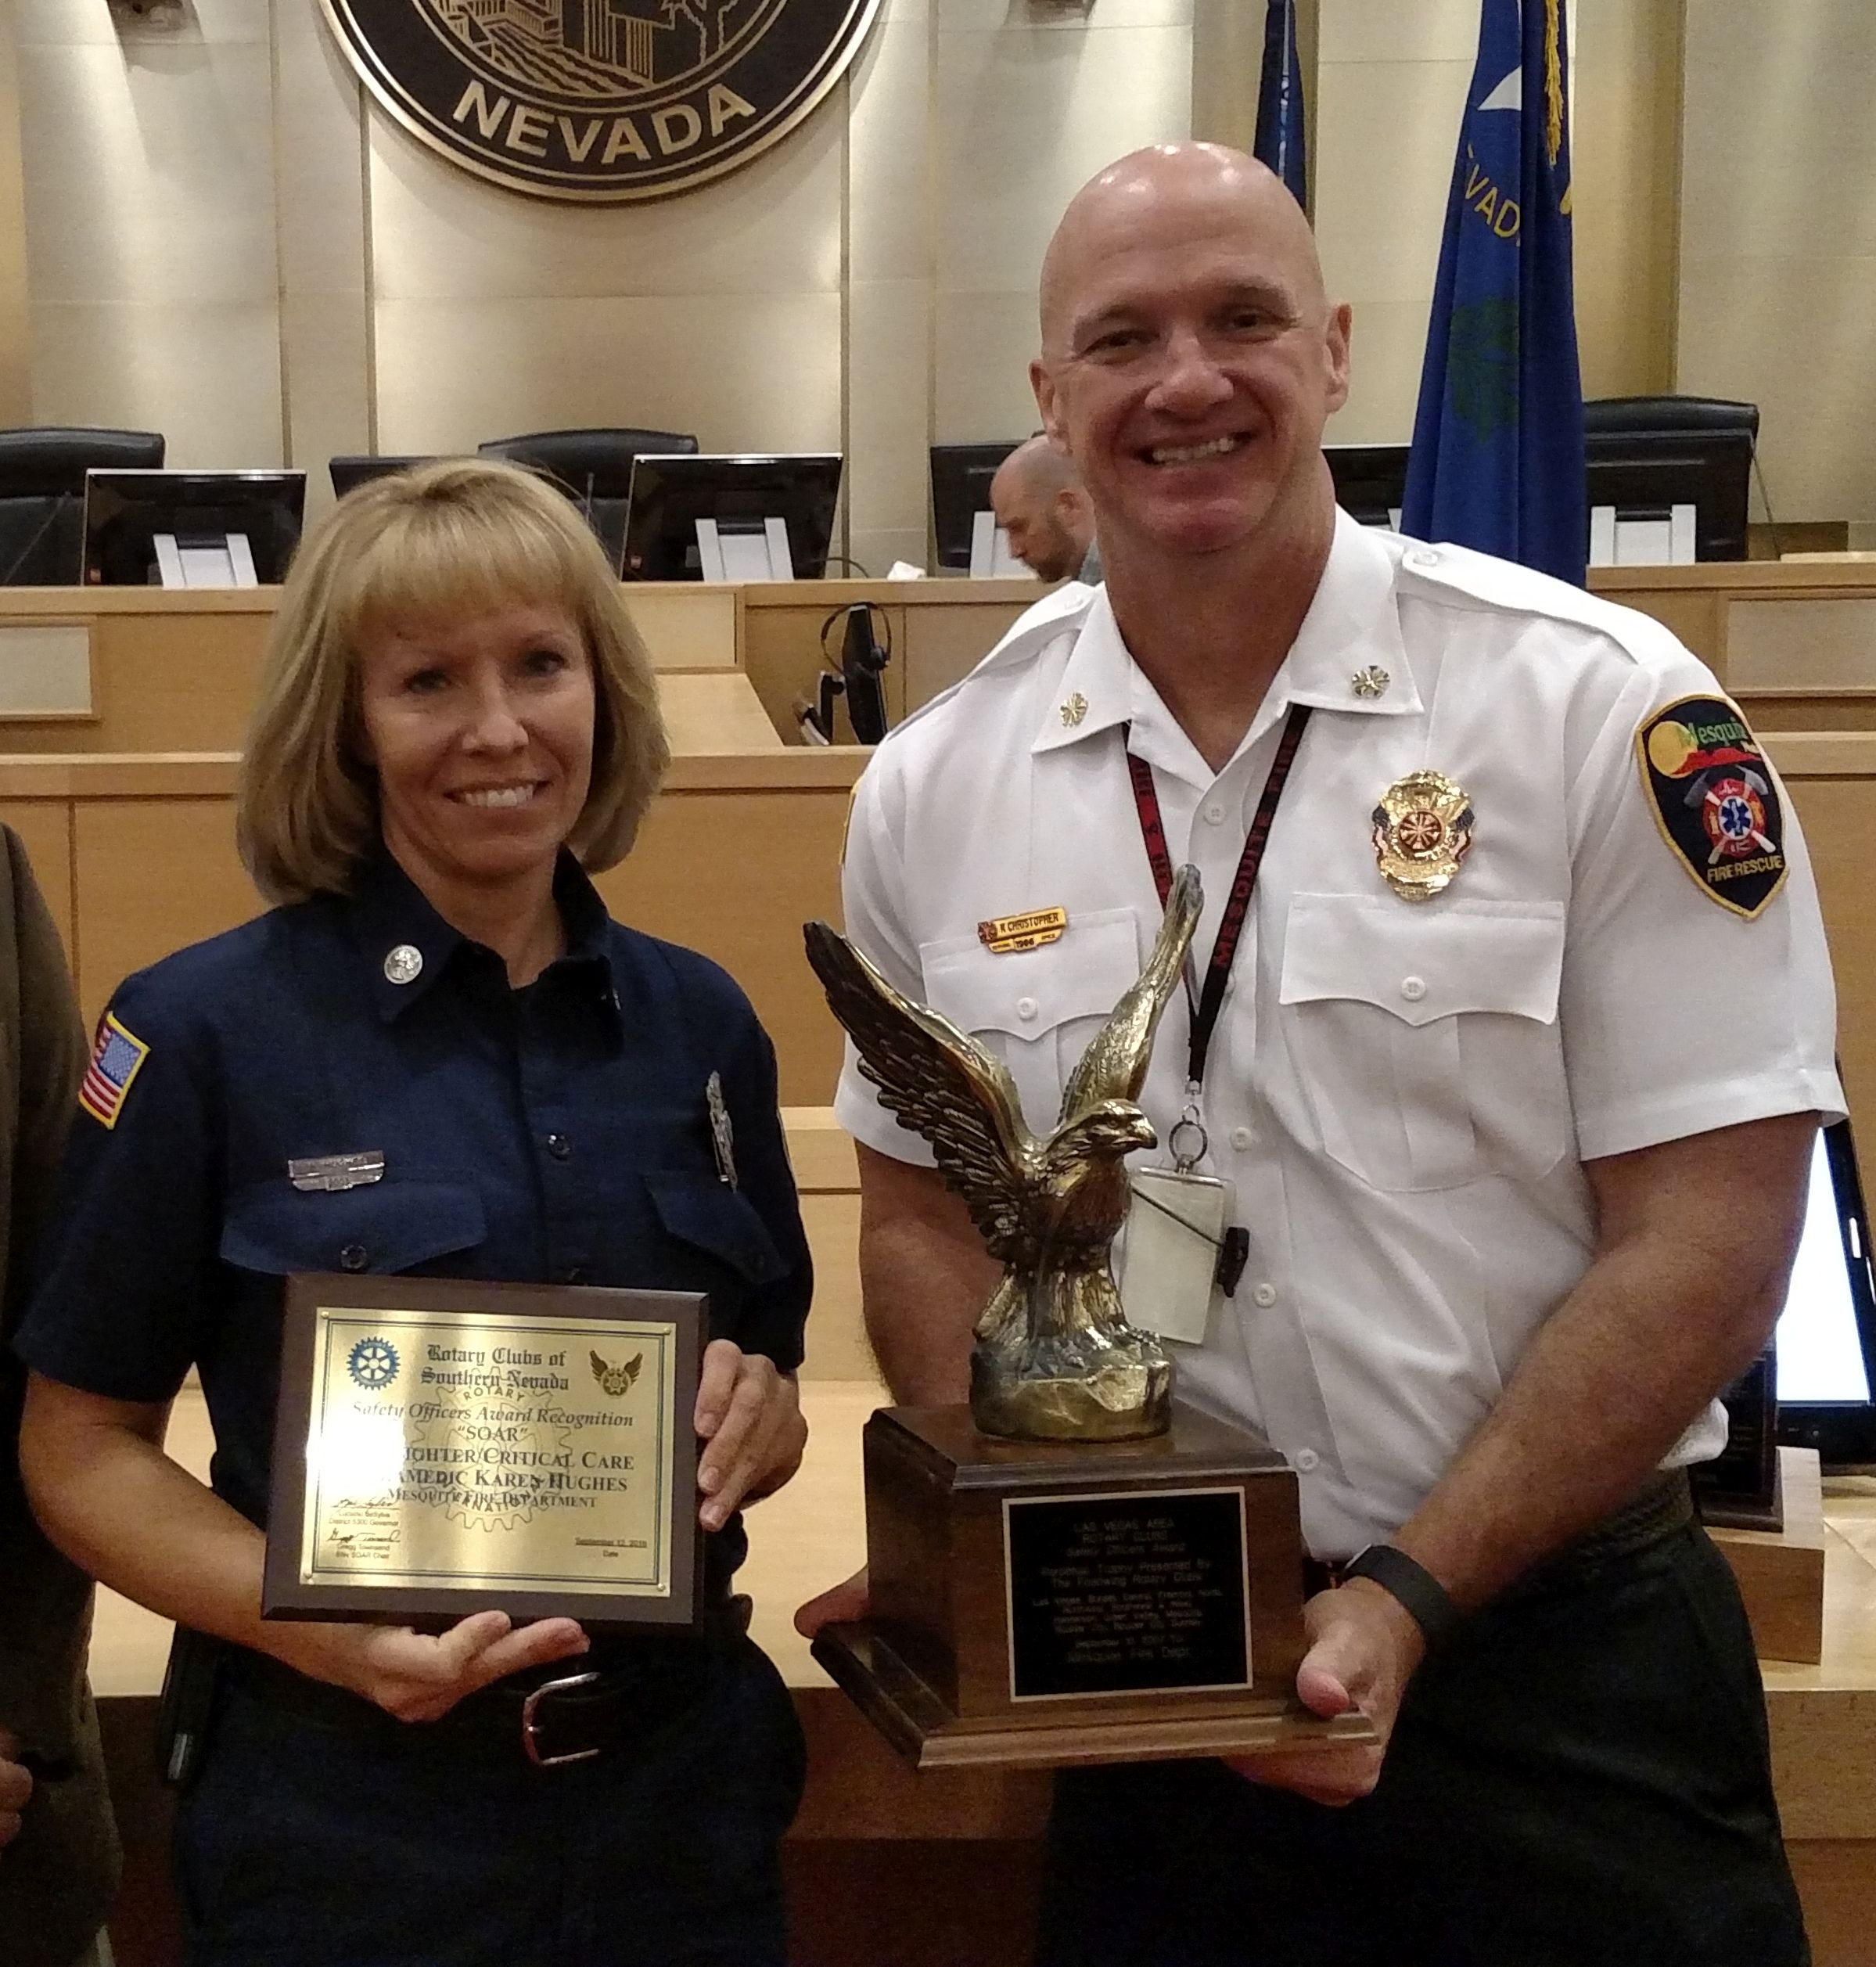 From L-R: Mesquite Firefighter/Critical Care Paramedics Karen Hughes and Jayson Andrus hold their SOAR award. Las Vegas, Nevada, undated   Photo courtesy of Mesquite Fire and Rescue, St. George News